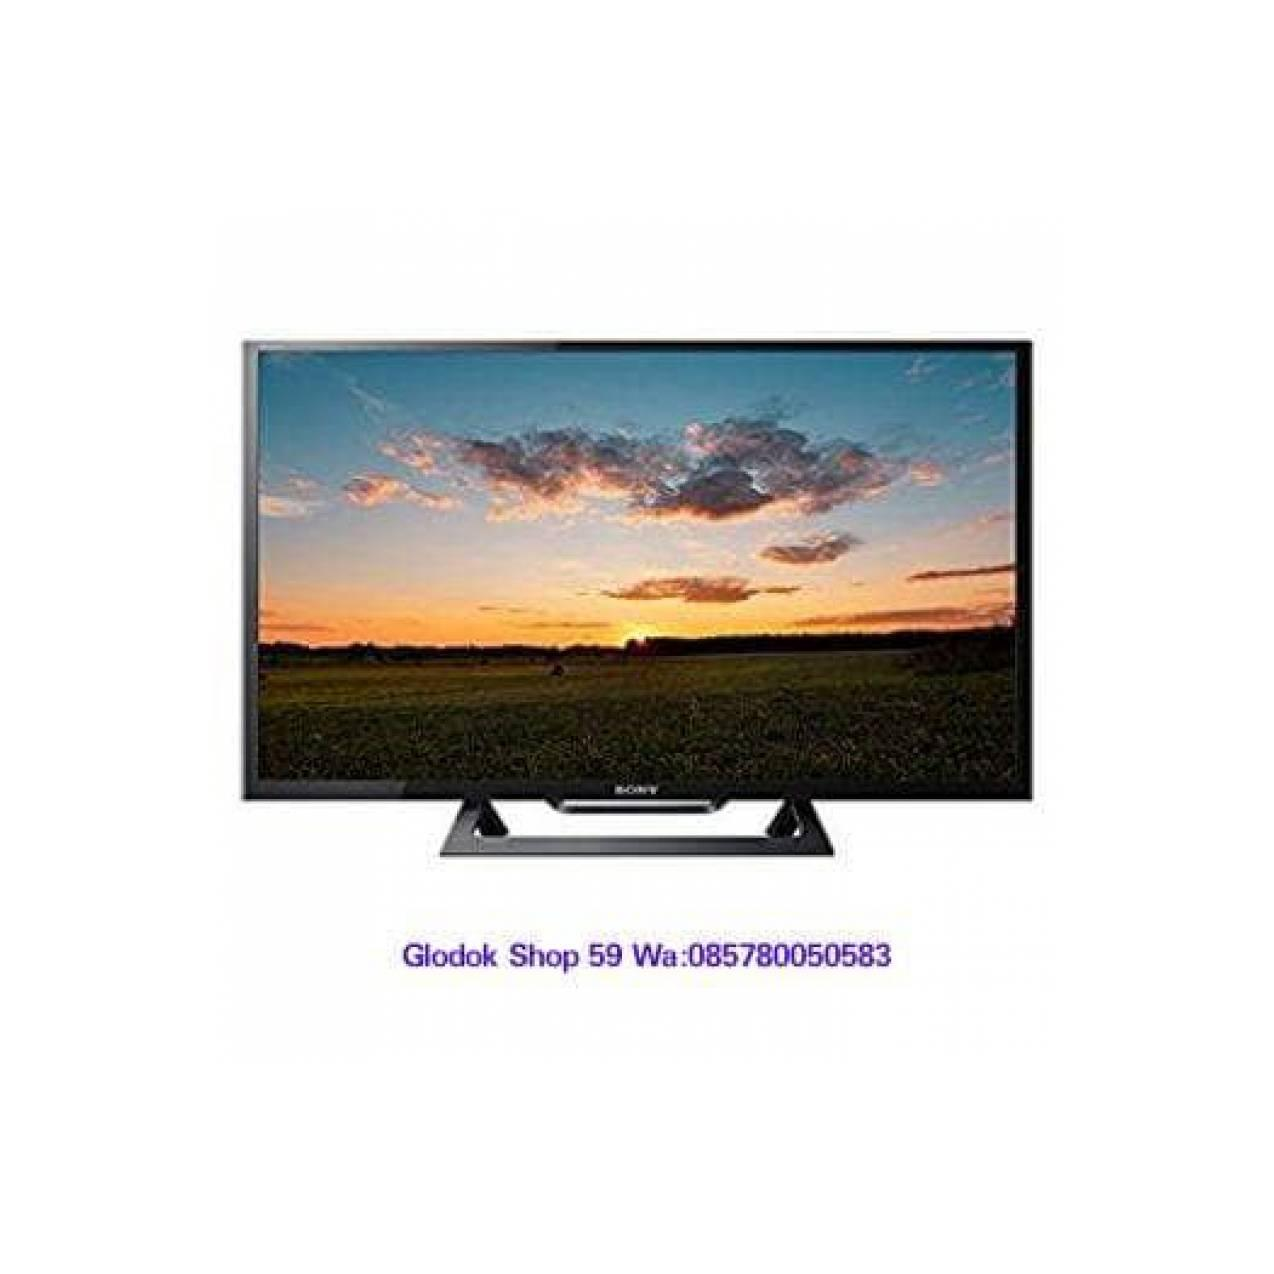 TV LED SONY KLV-40R352C FULL HD X-PROTECTION PRO CLEAR ENHANCER NEW